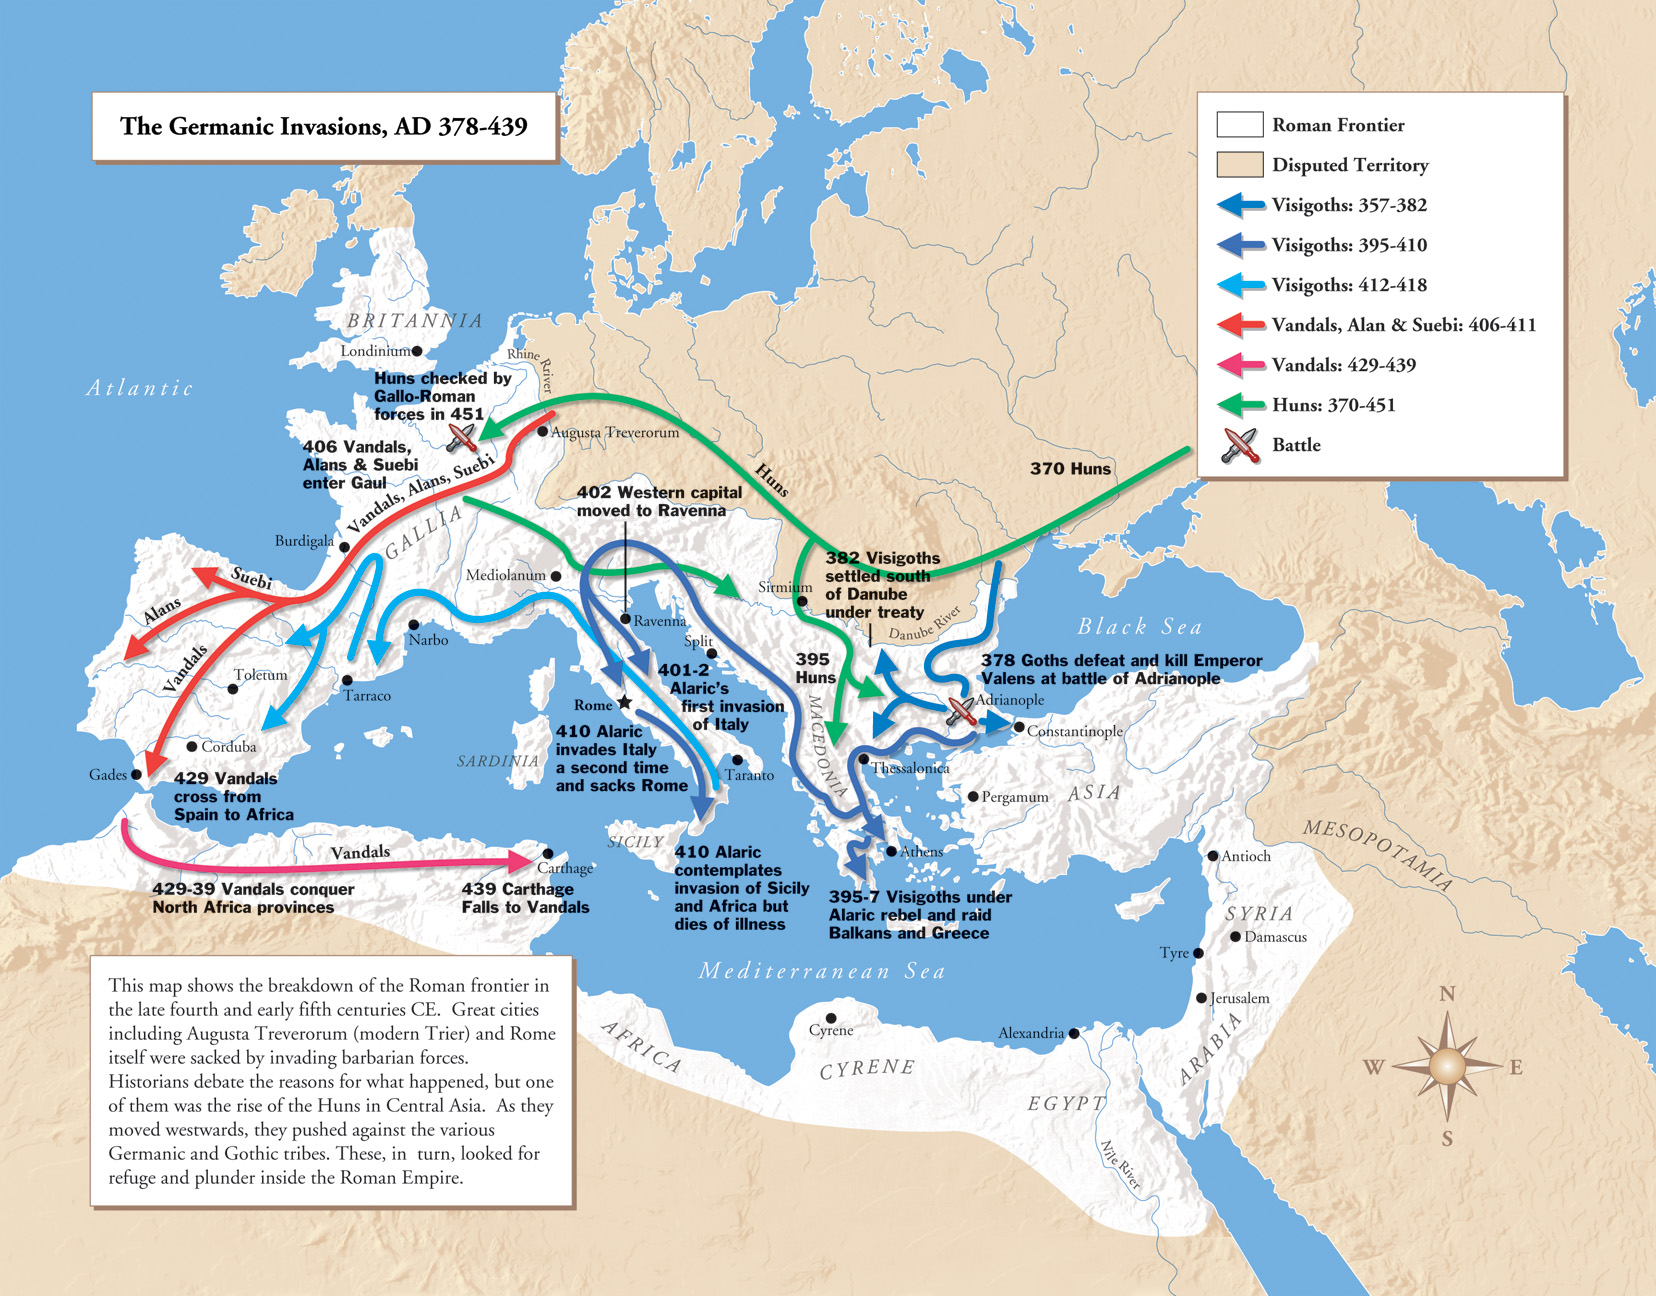 The Germanic Invasions of the Roman Empire 378-439 AD